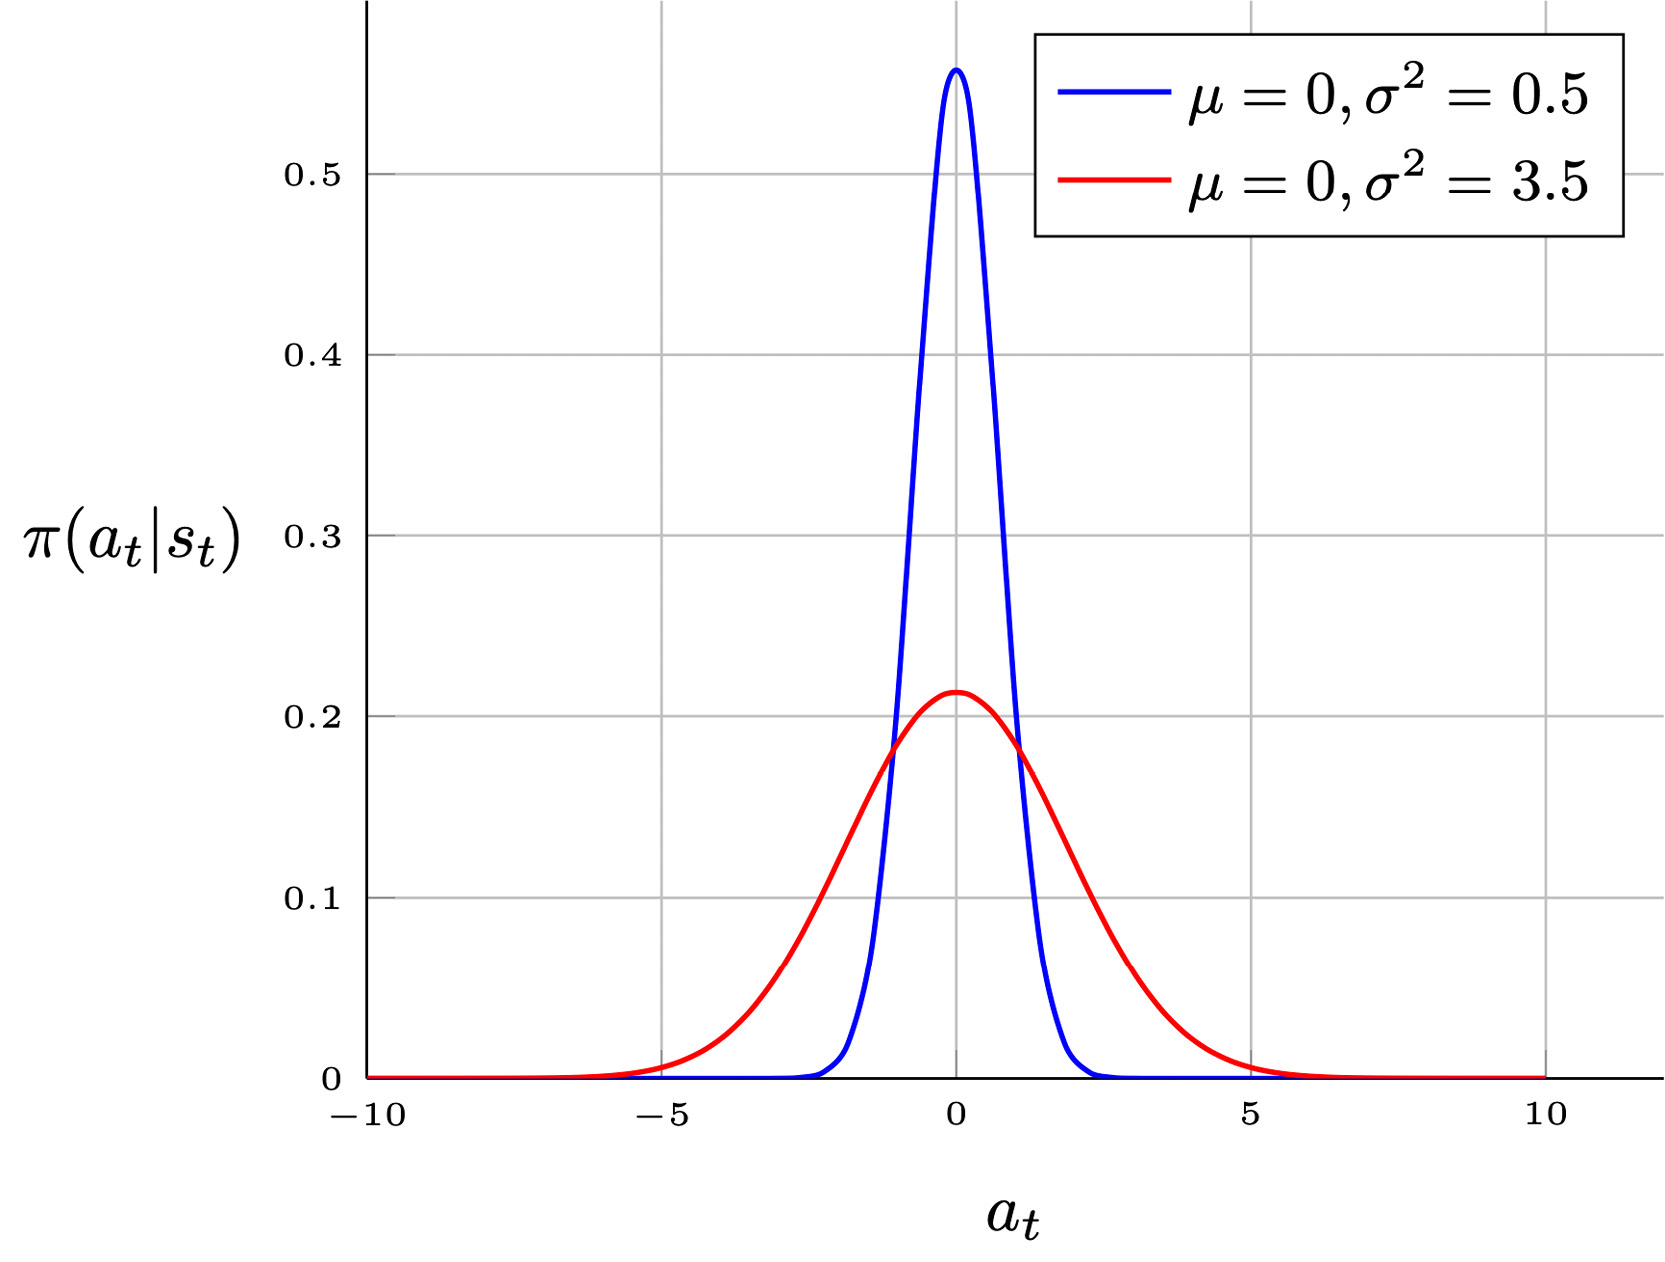 Figure 1.26: The effect of the variance on a Gaussian policy